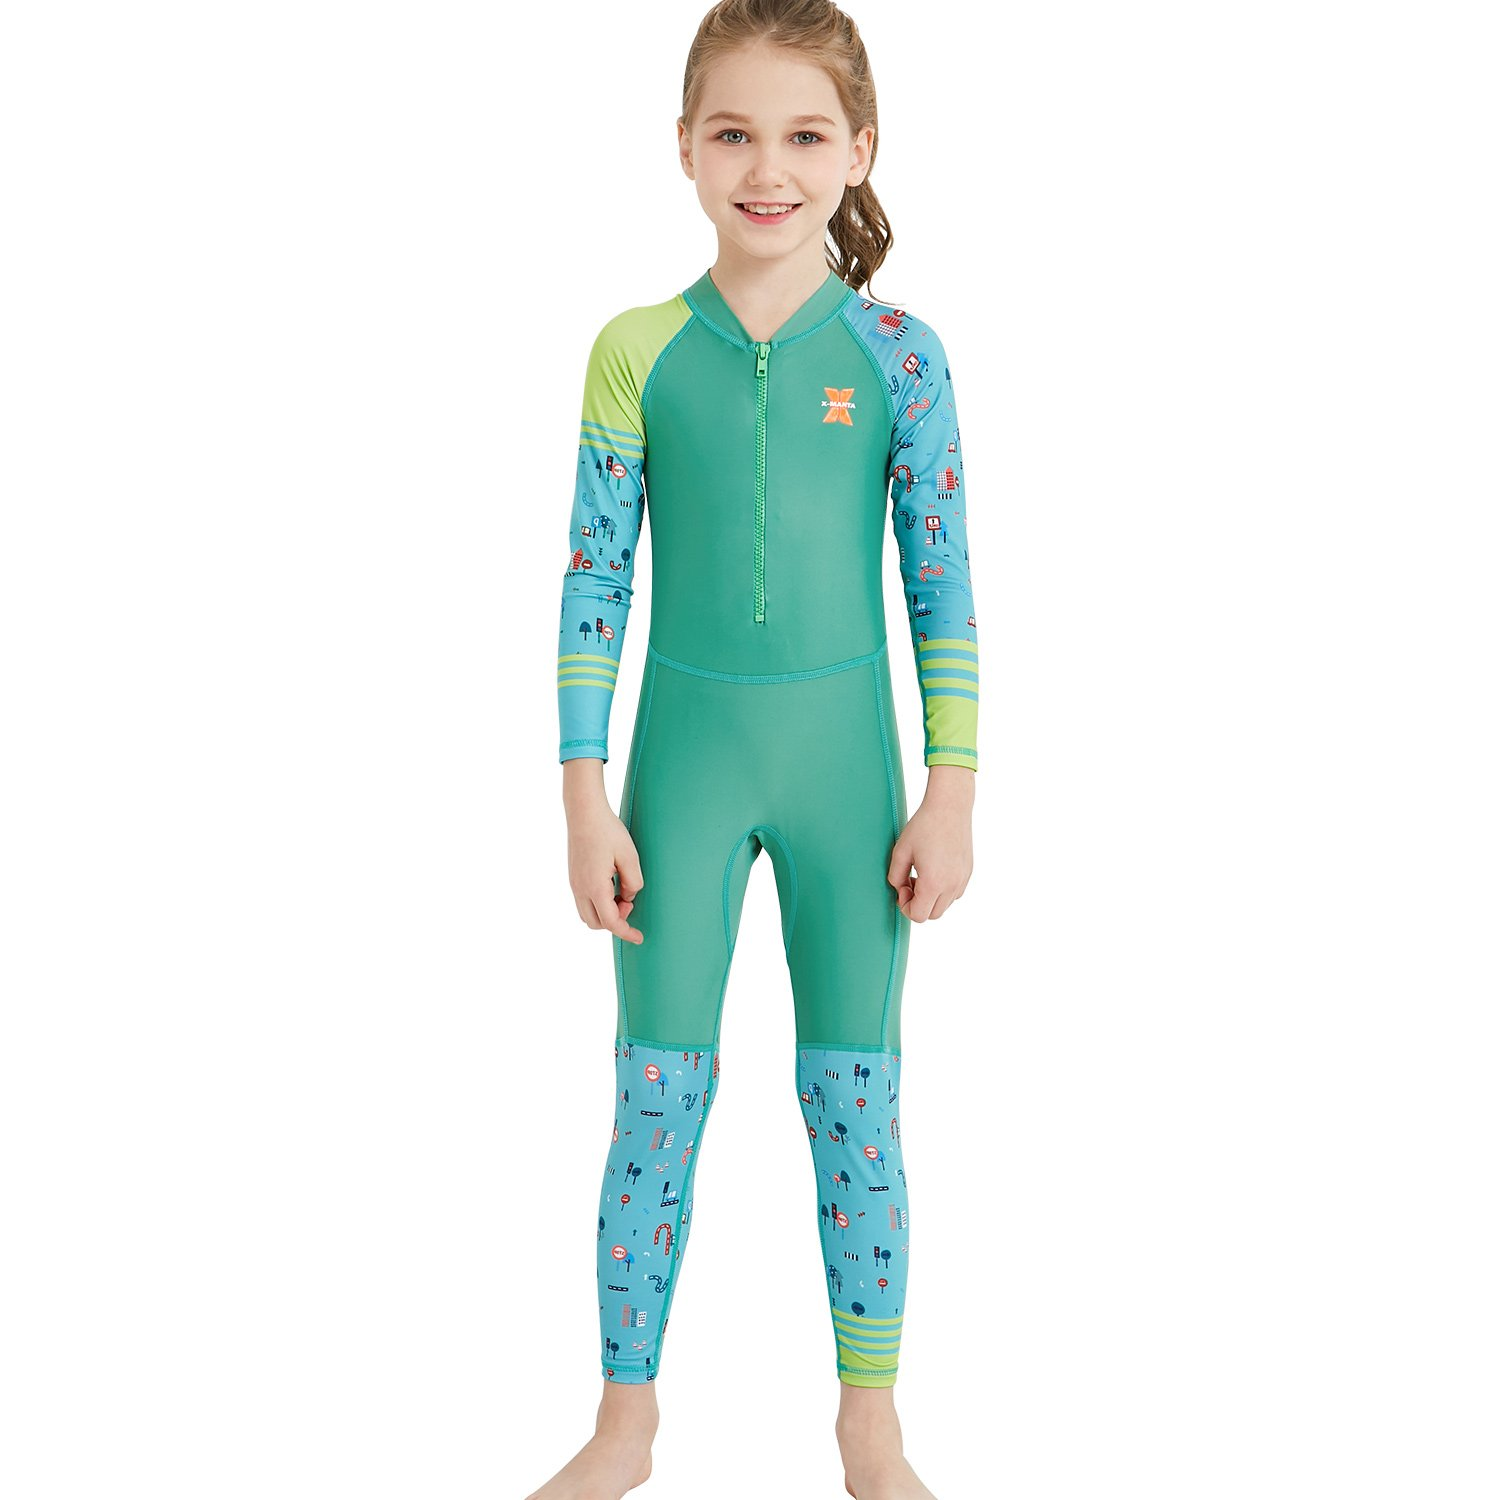 fb32d35731bc Dark Lightning Girls Full Body Suits, Kids UV Protective Swimwear, One  Piece Long Sleeve